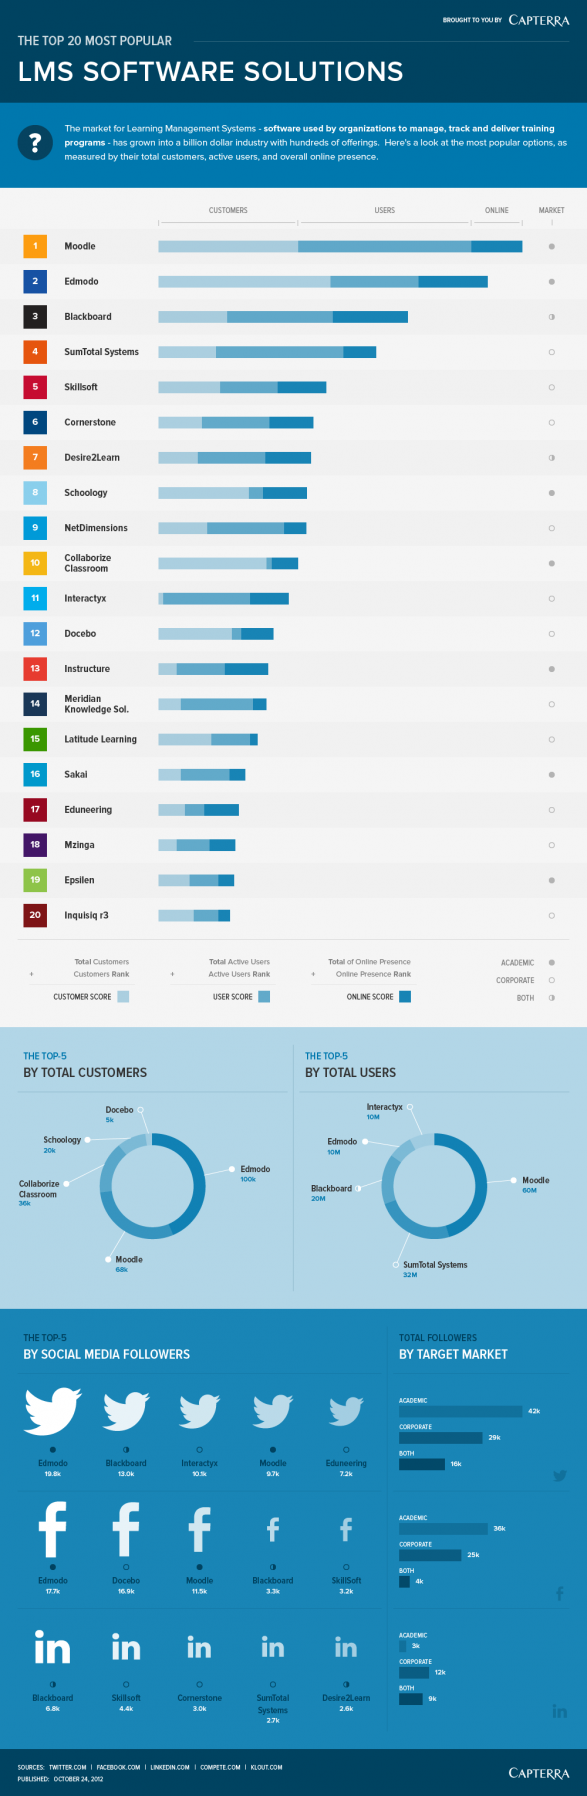 The Top 20 Most Popular LMS Software Solutions